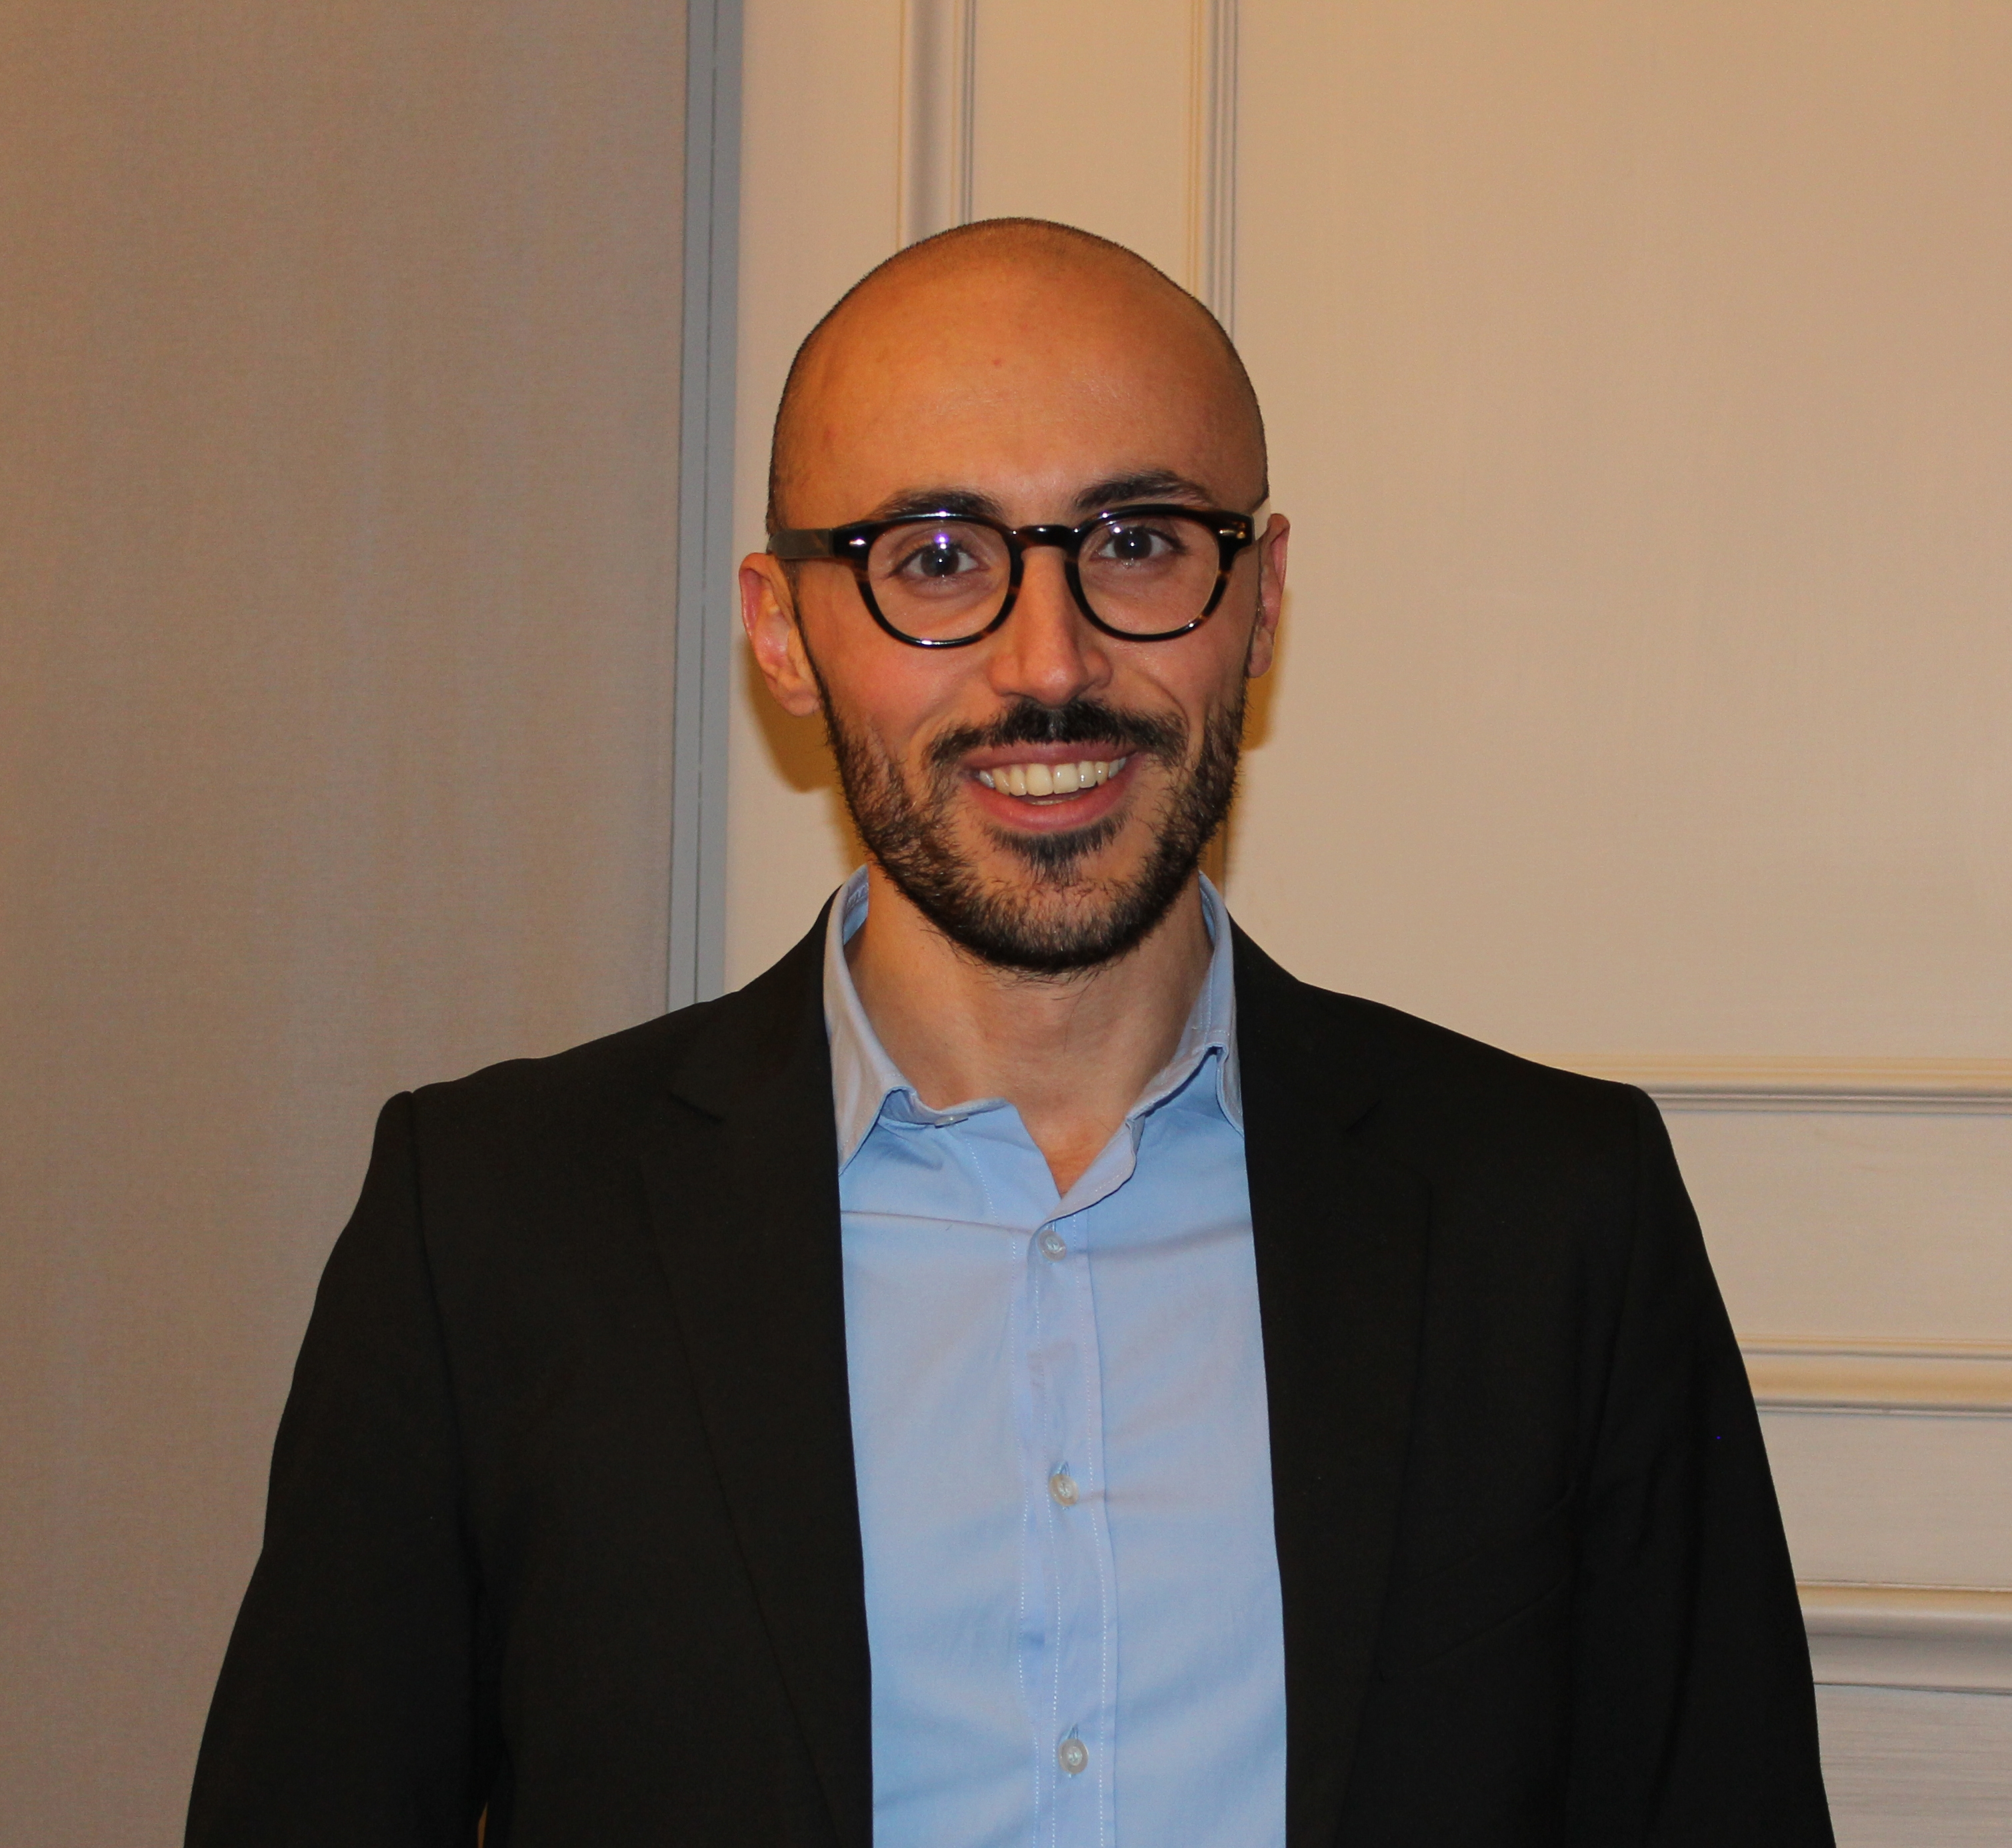 Alessandro Marconcini, HR Manager di GE Power